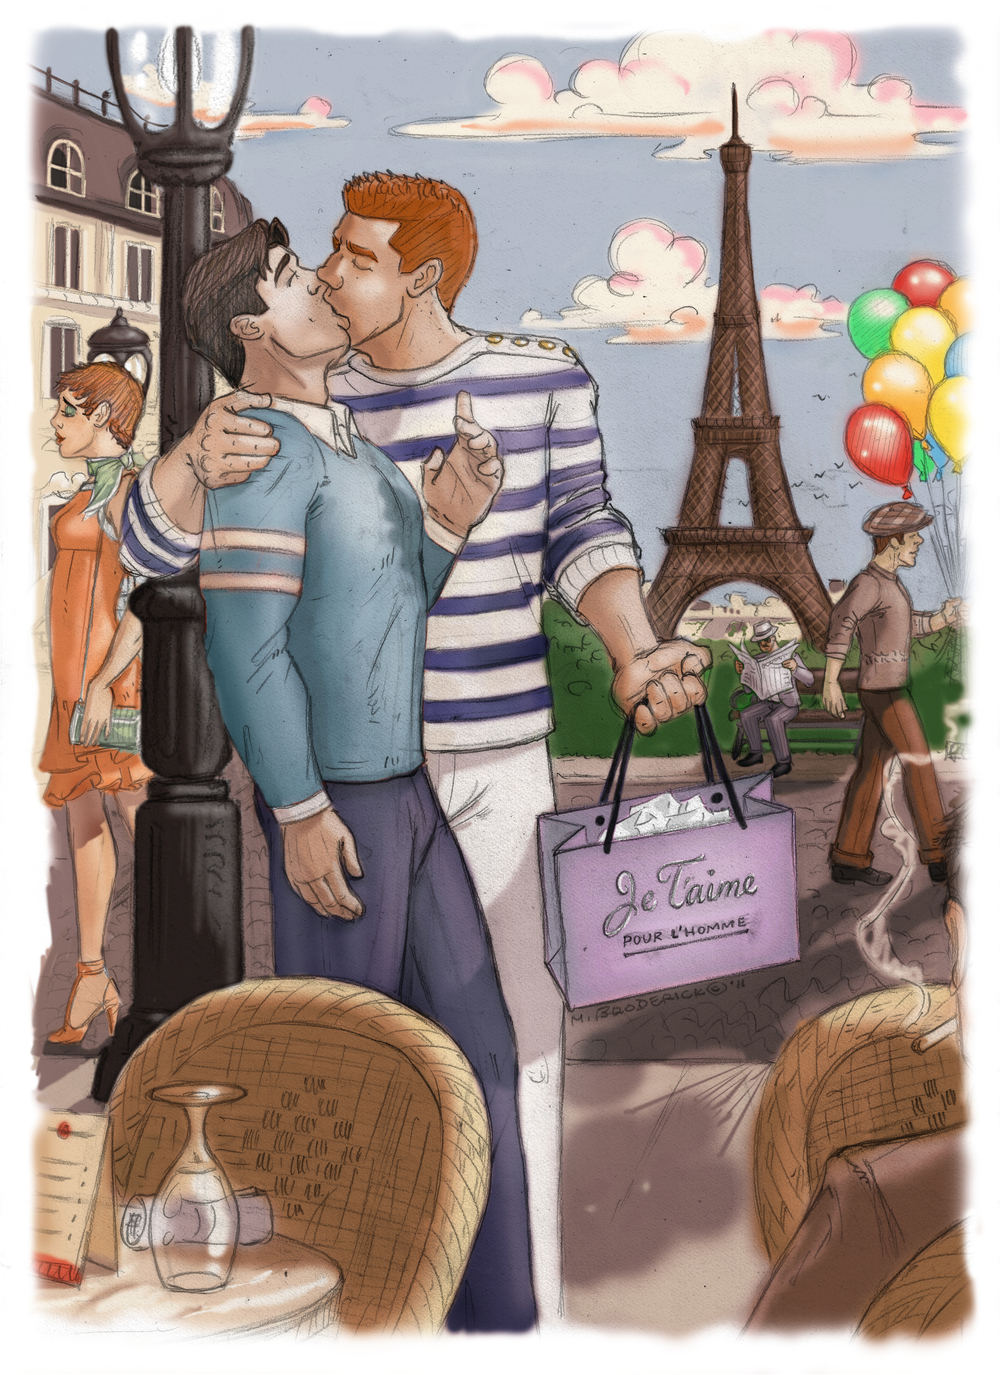 The back cover illustration for Glen & Tyler's Paris Double-cross, which only appears on the hardcover edition.